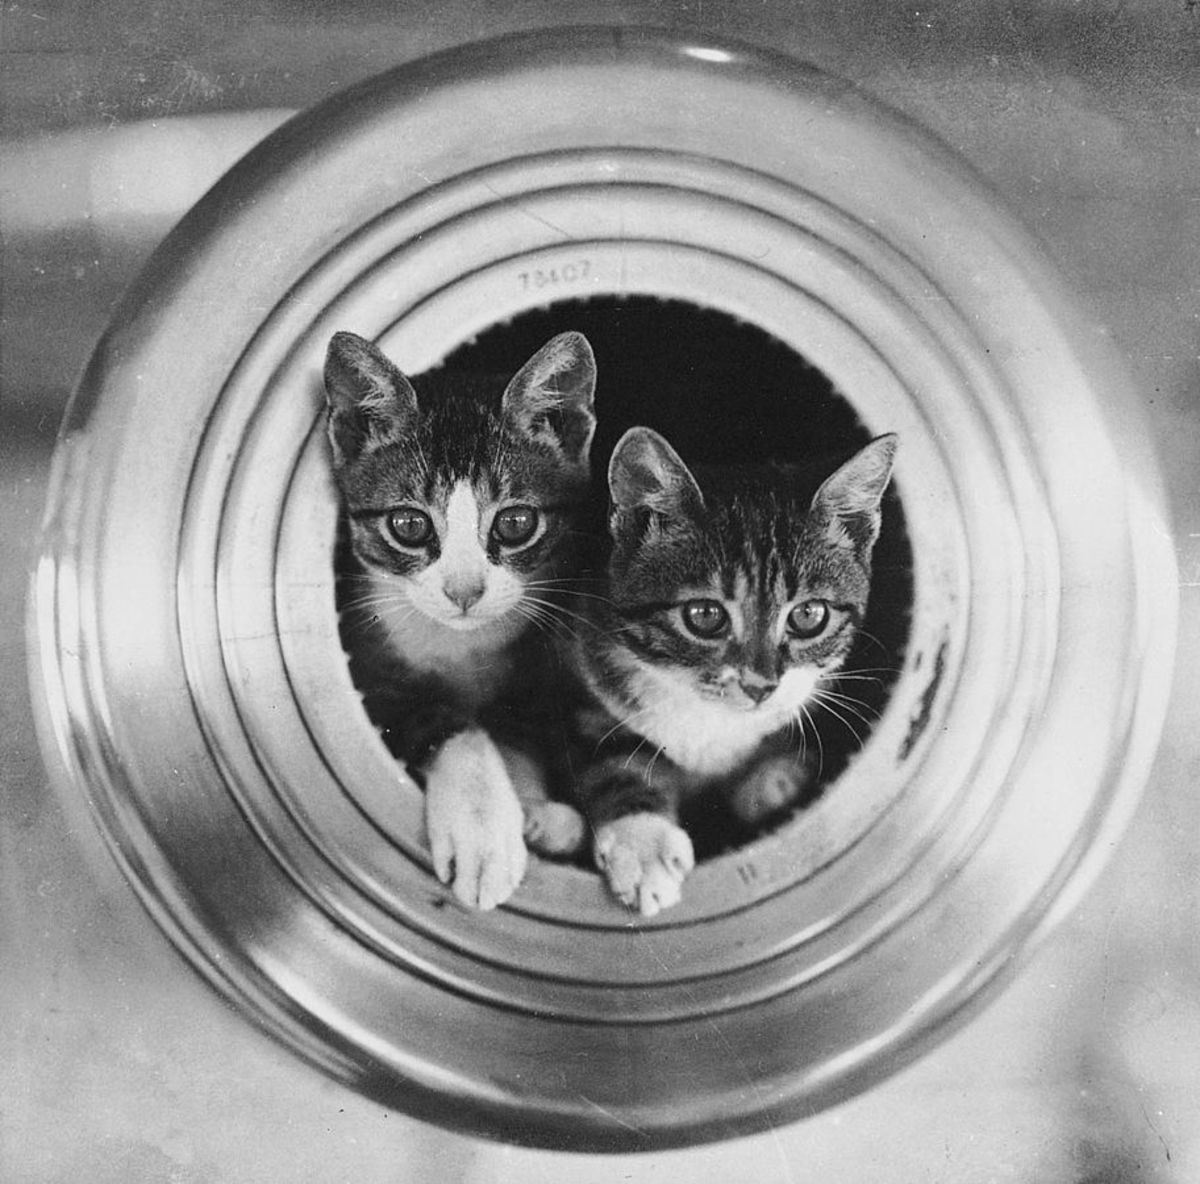 More ship's cats this time nestled in a 7.5 inch gun barrel aboard HMS Hawkins.